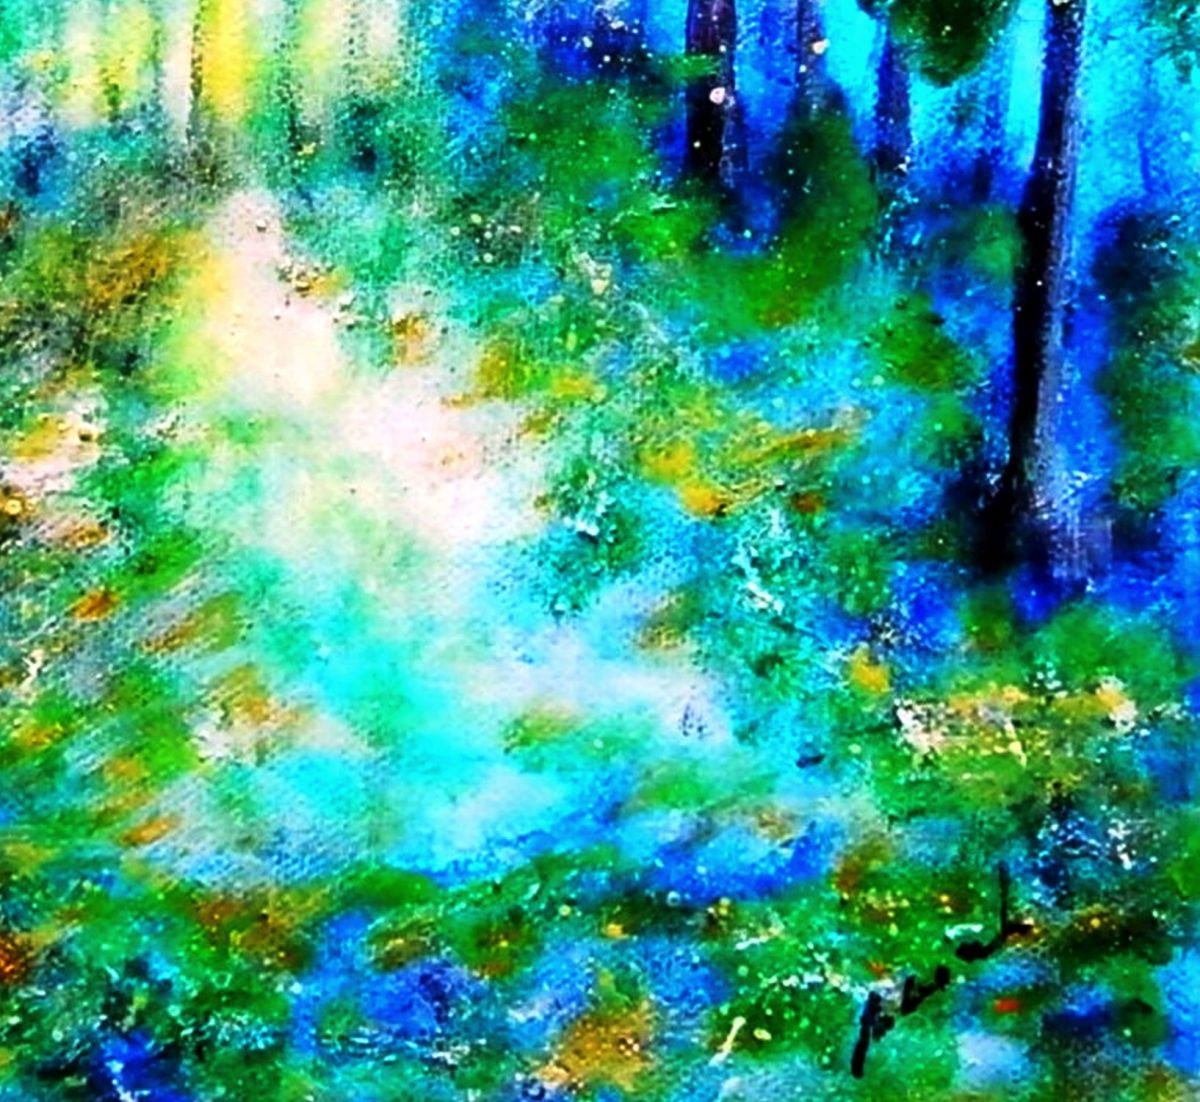 The blue green forest 2016 acrylic painting by em lia for Painting a forest in acrylics